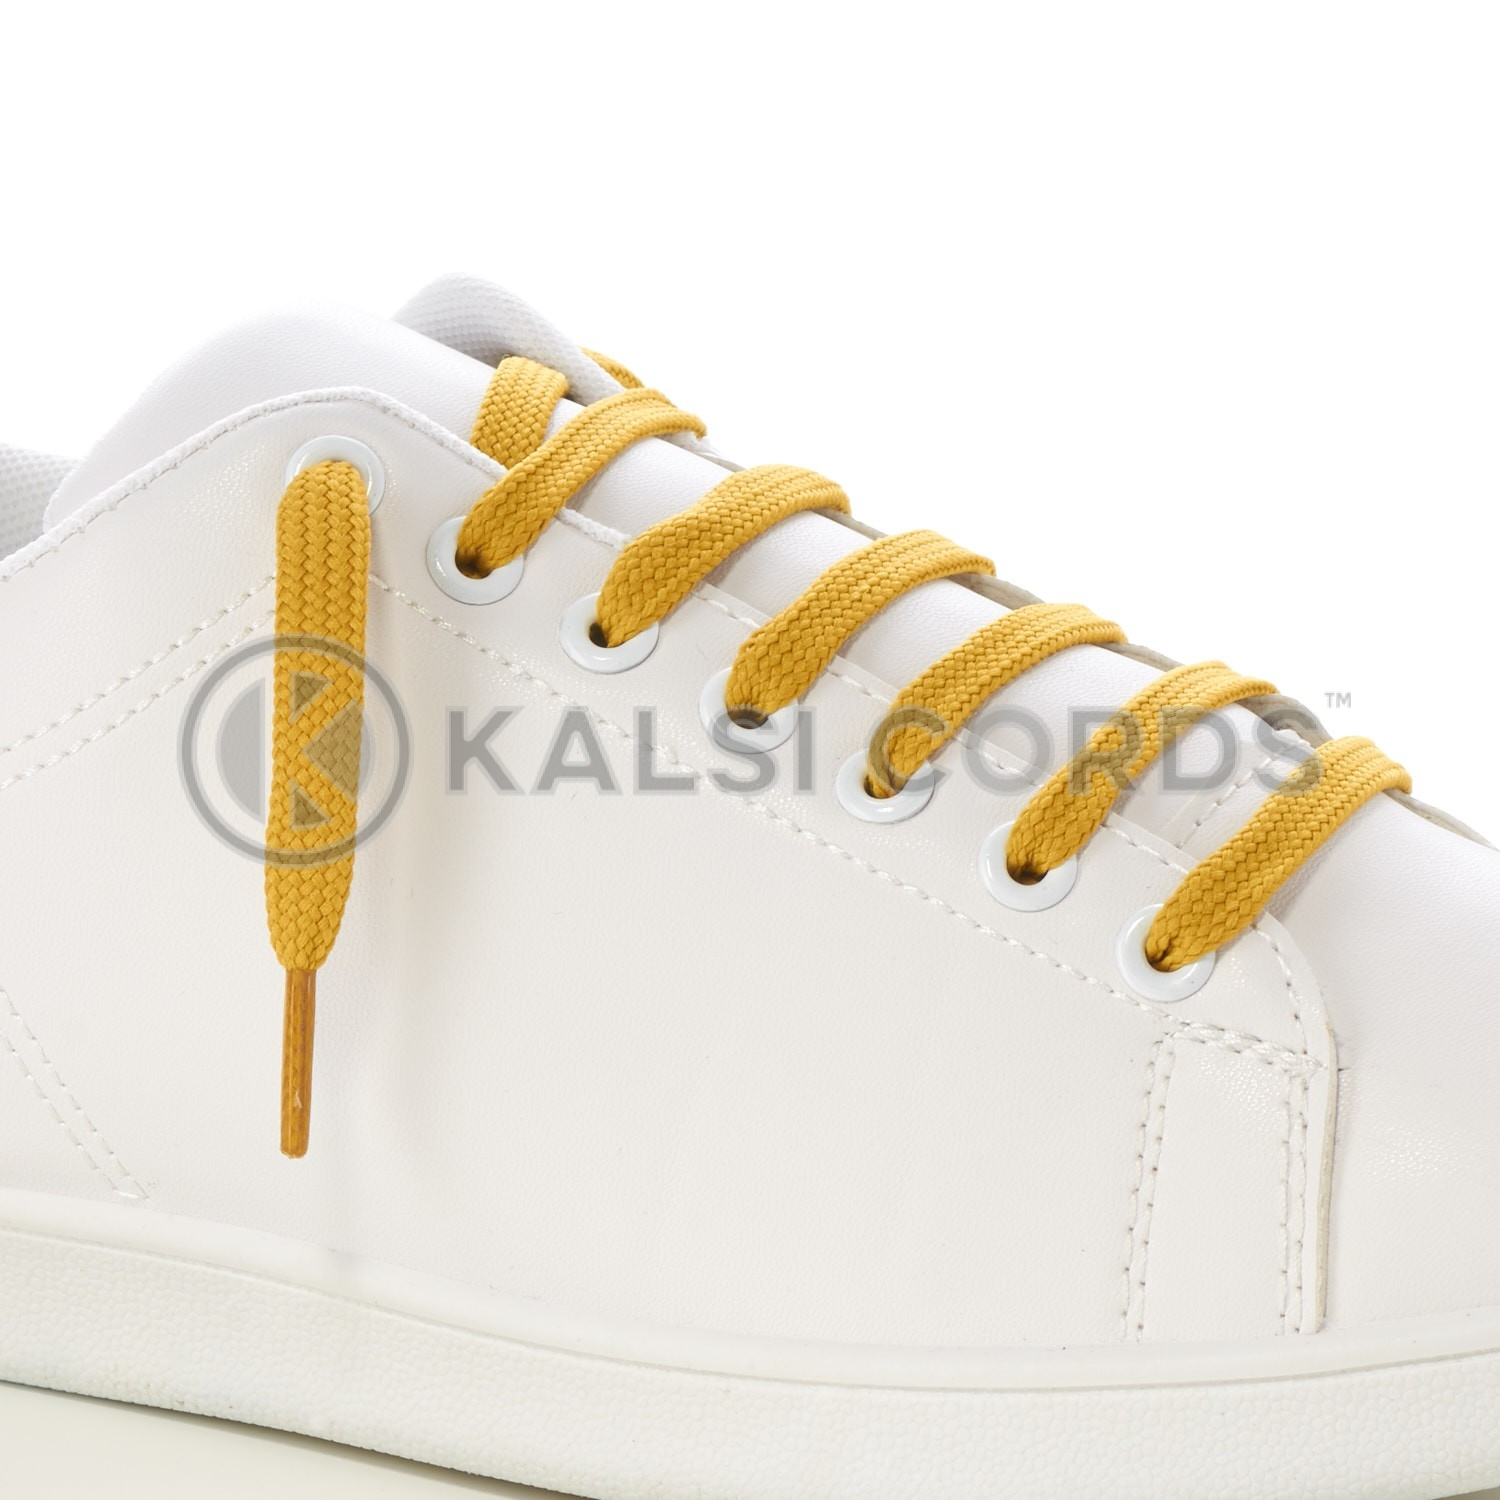 9mm Flat Shoe Laces Tubular Sovereign Gold PG930 Sports Trainers Boots Footwear Drawstring Drawcord